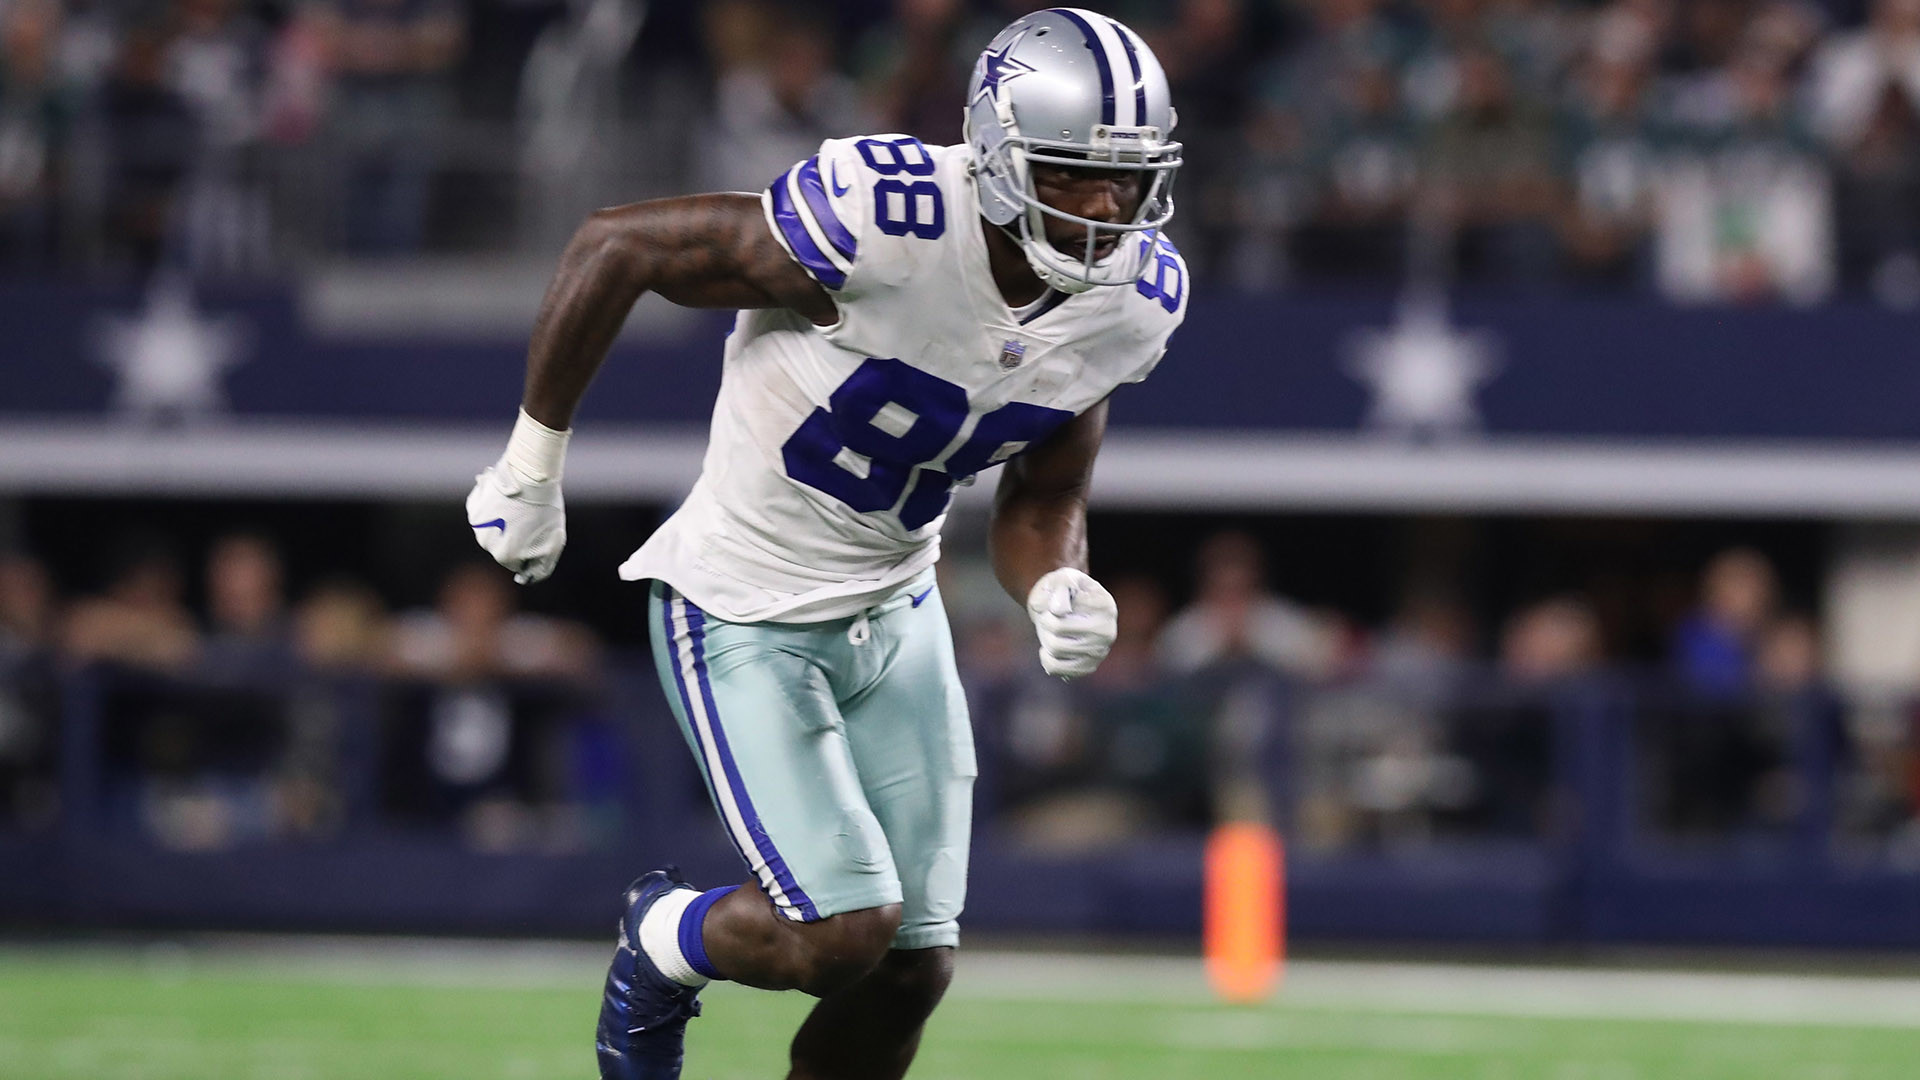 1920x1080 Cowboys to cut ties with Dez Bryant